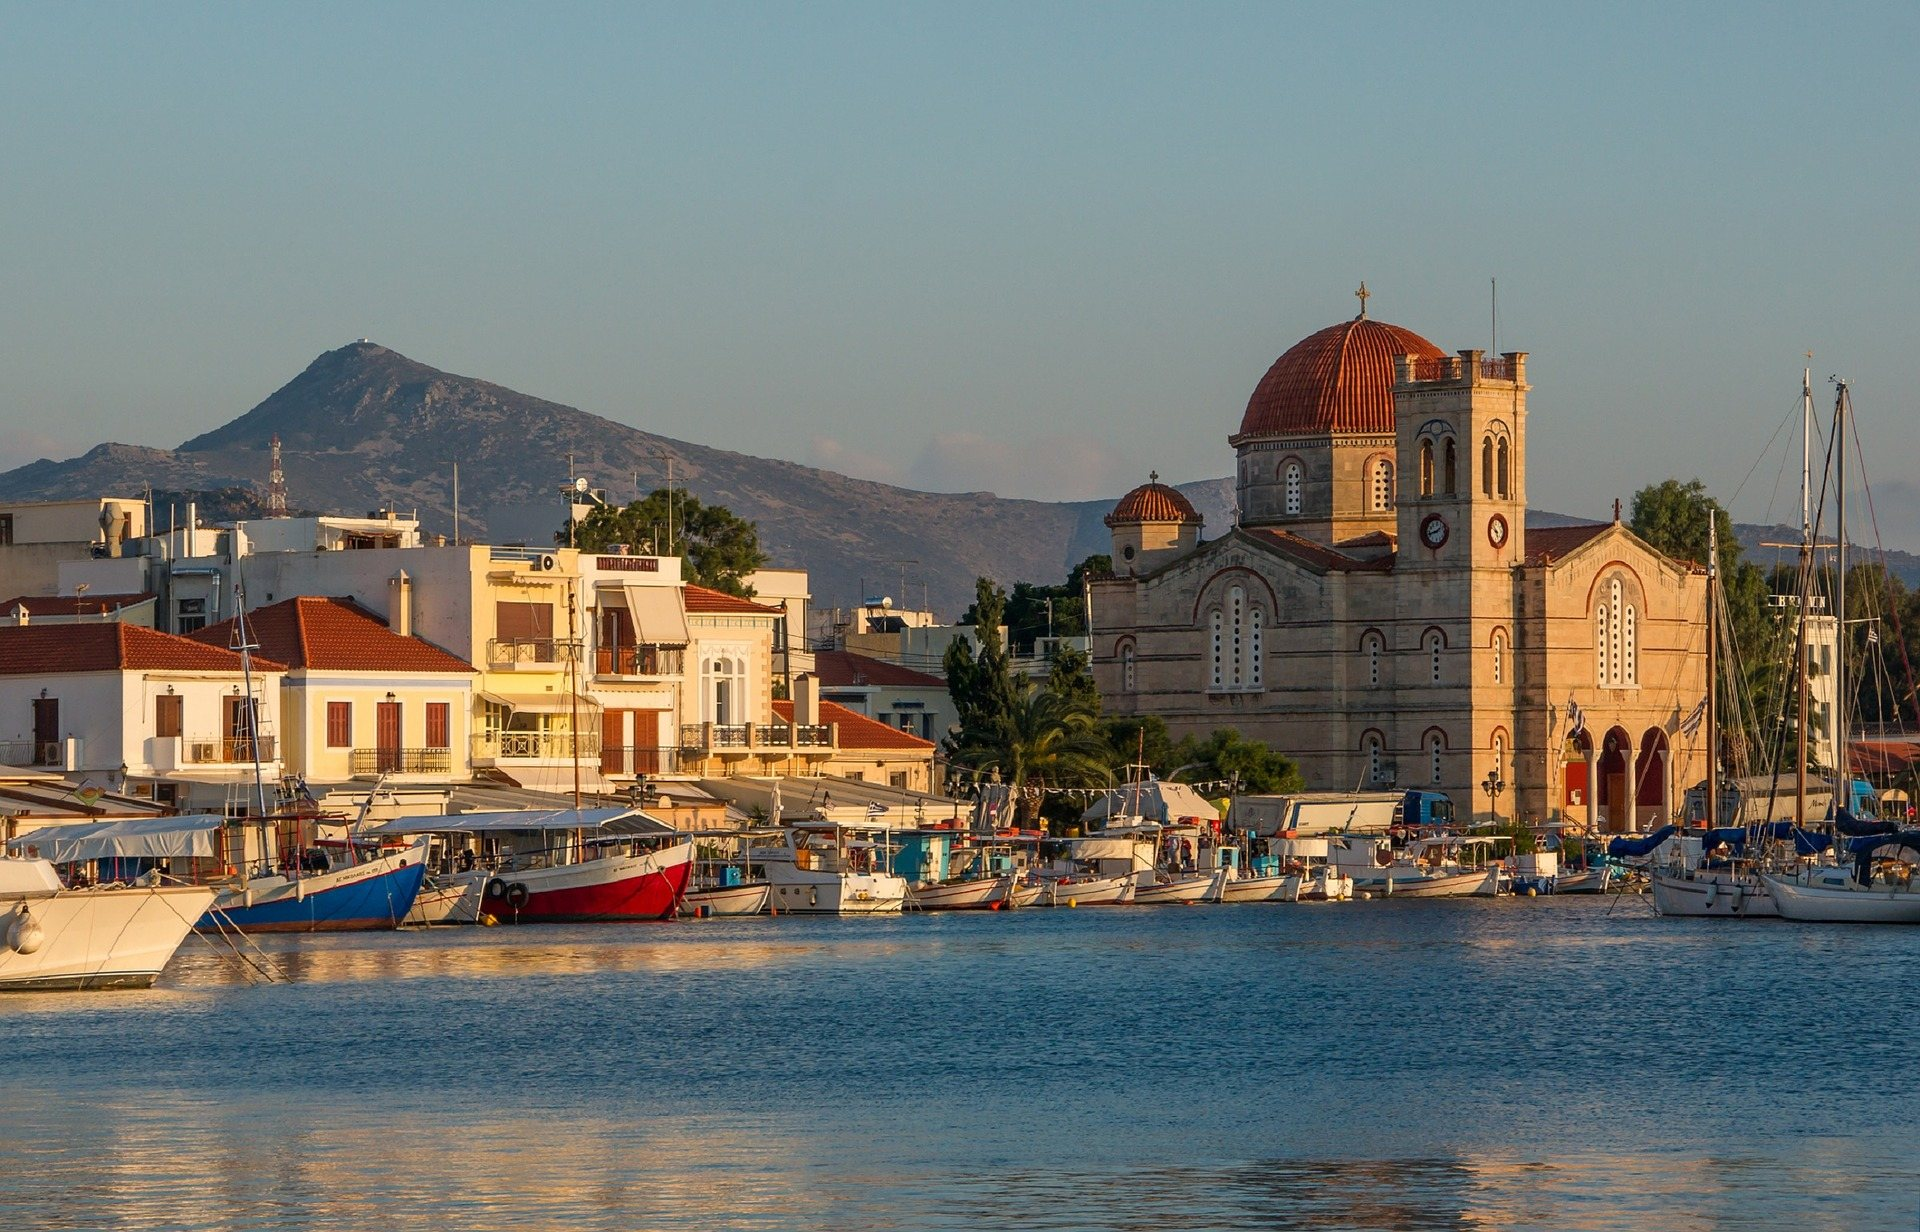 Do visit the islands and the mainland in Greece as there are many destinations deserving your attention. Here, the picture is captured in Aigina island.